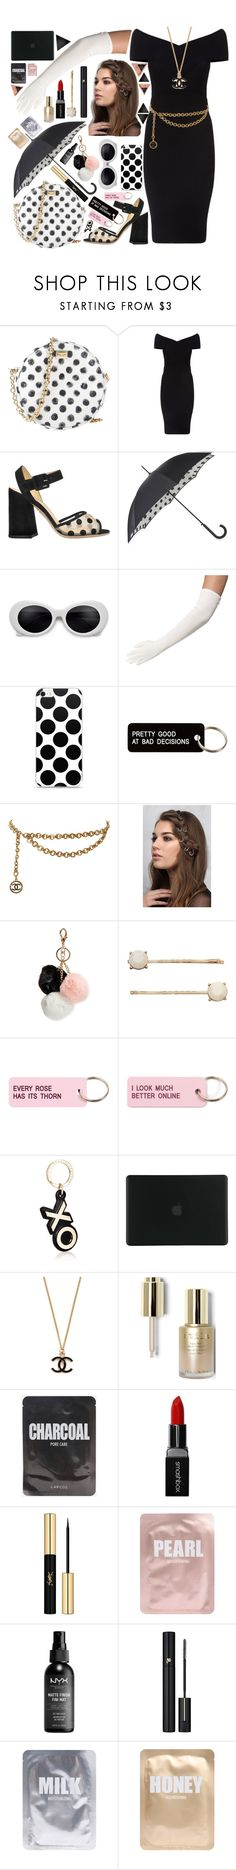 """""""Black and White Classy"""" by harrypotterlover12 ❤ liked on Polyvore featuring Dolce&Gabbana, Maje, Charlotte Olympia, Fulton, Various Projects, Chanel, Rare London, GUESS, LC Lauren Conrad and Barneys New York"""